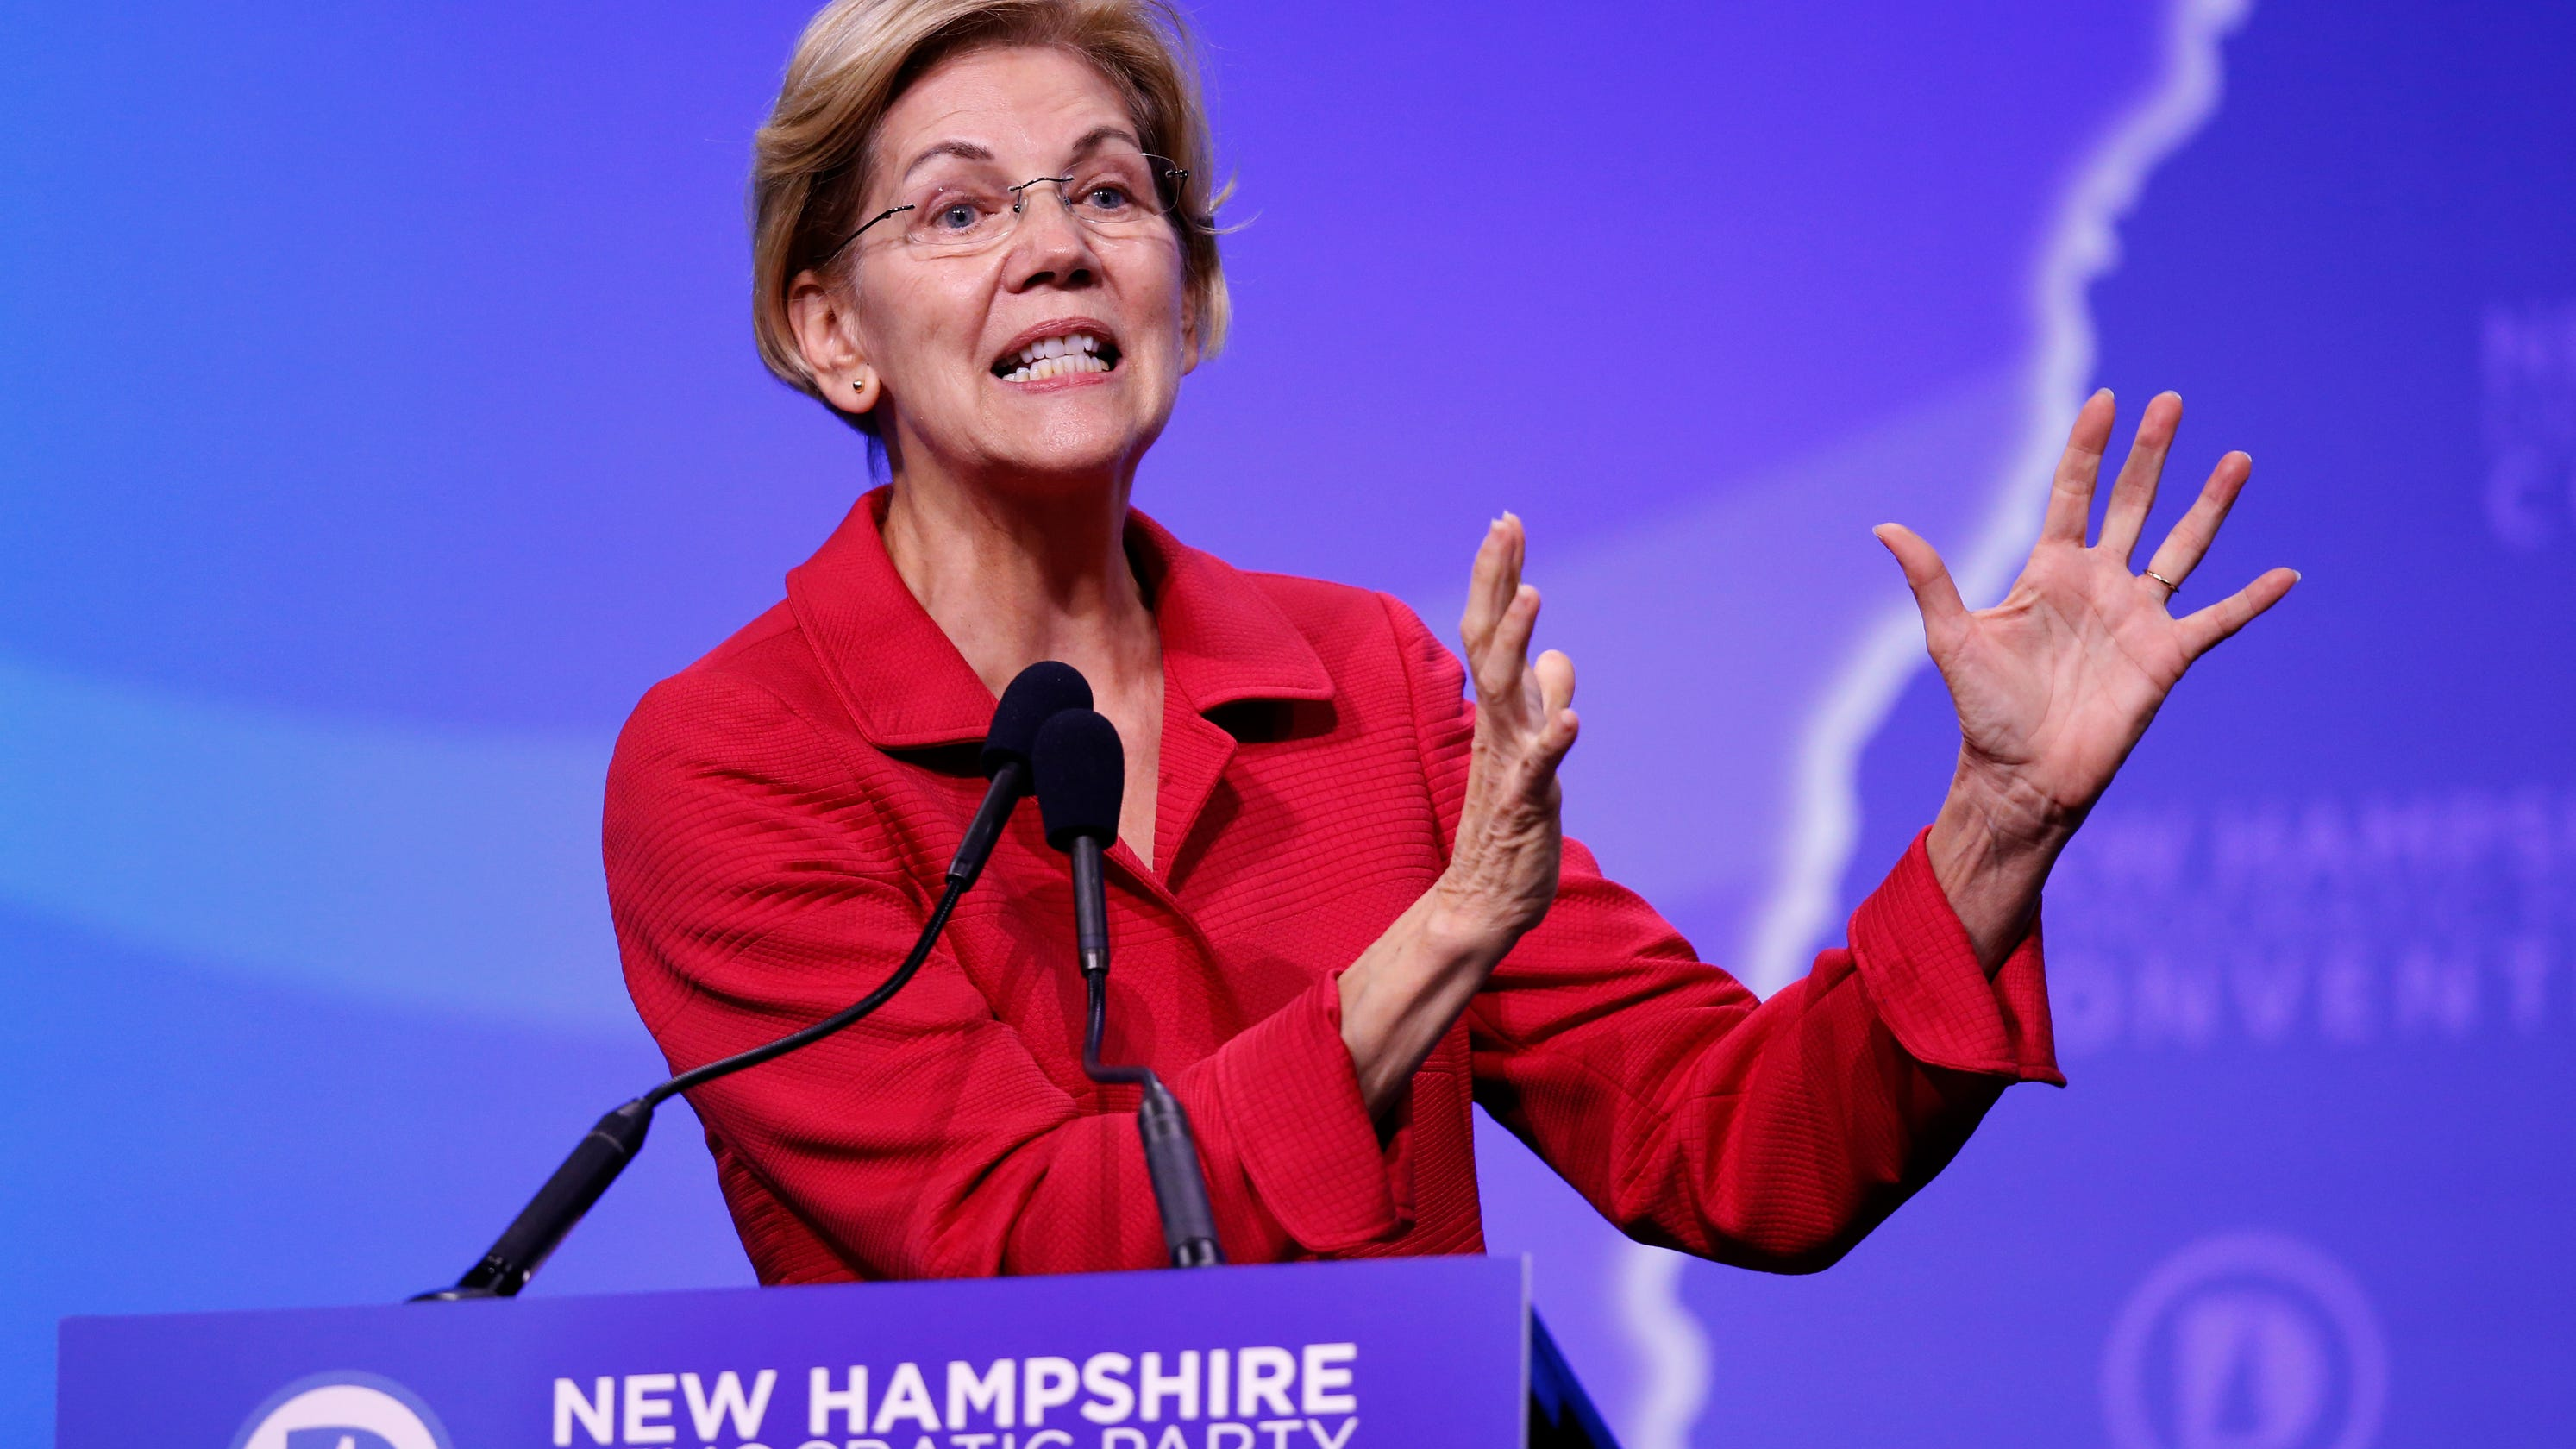 Elizabeth Warren shares stories of other women who experienced pregnancy discrimination